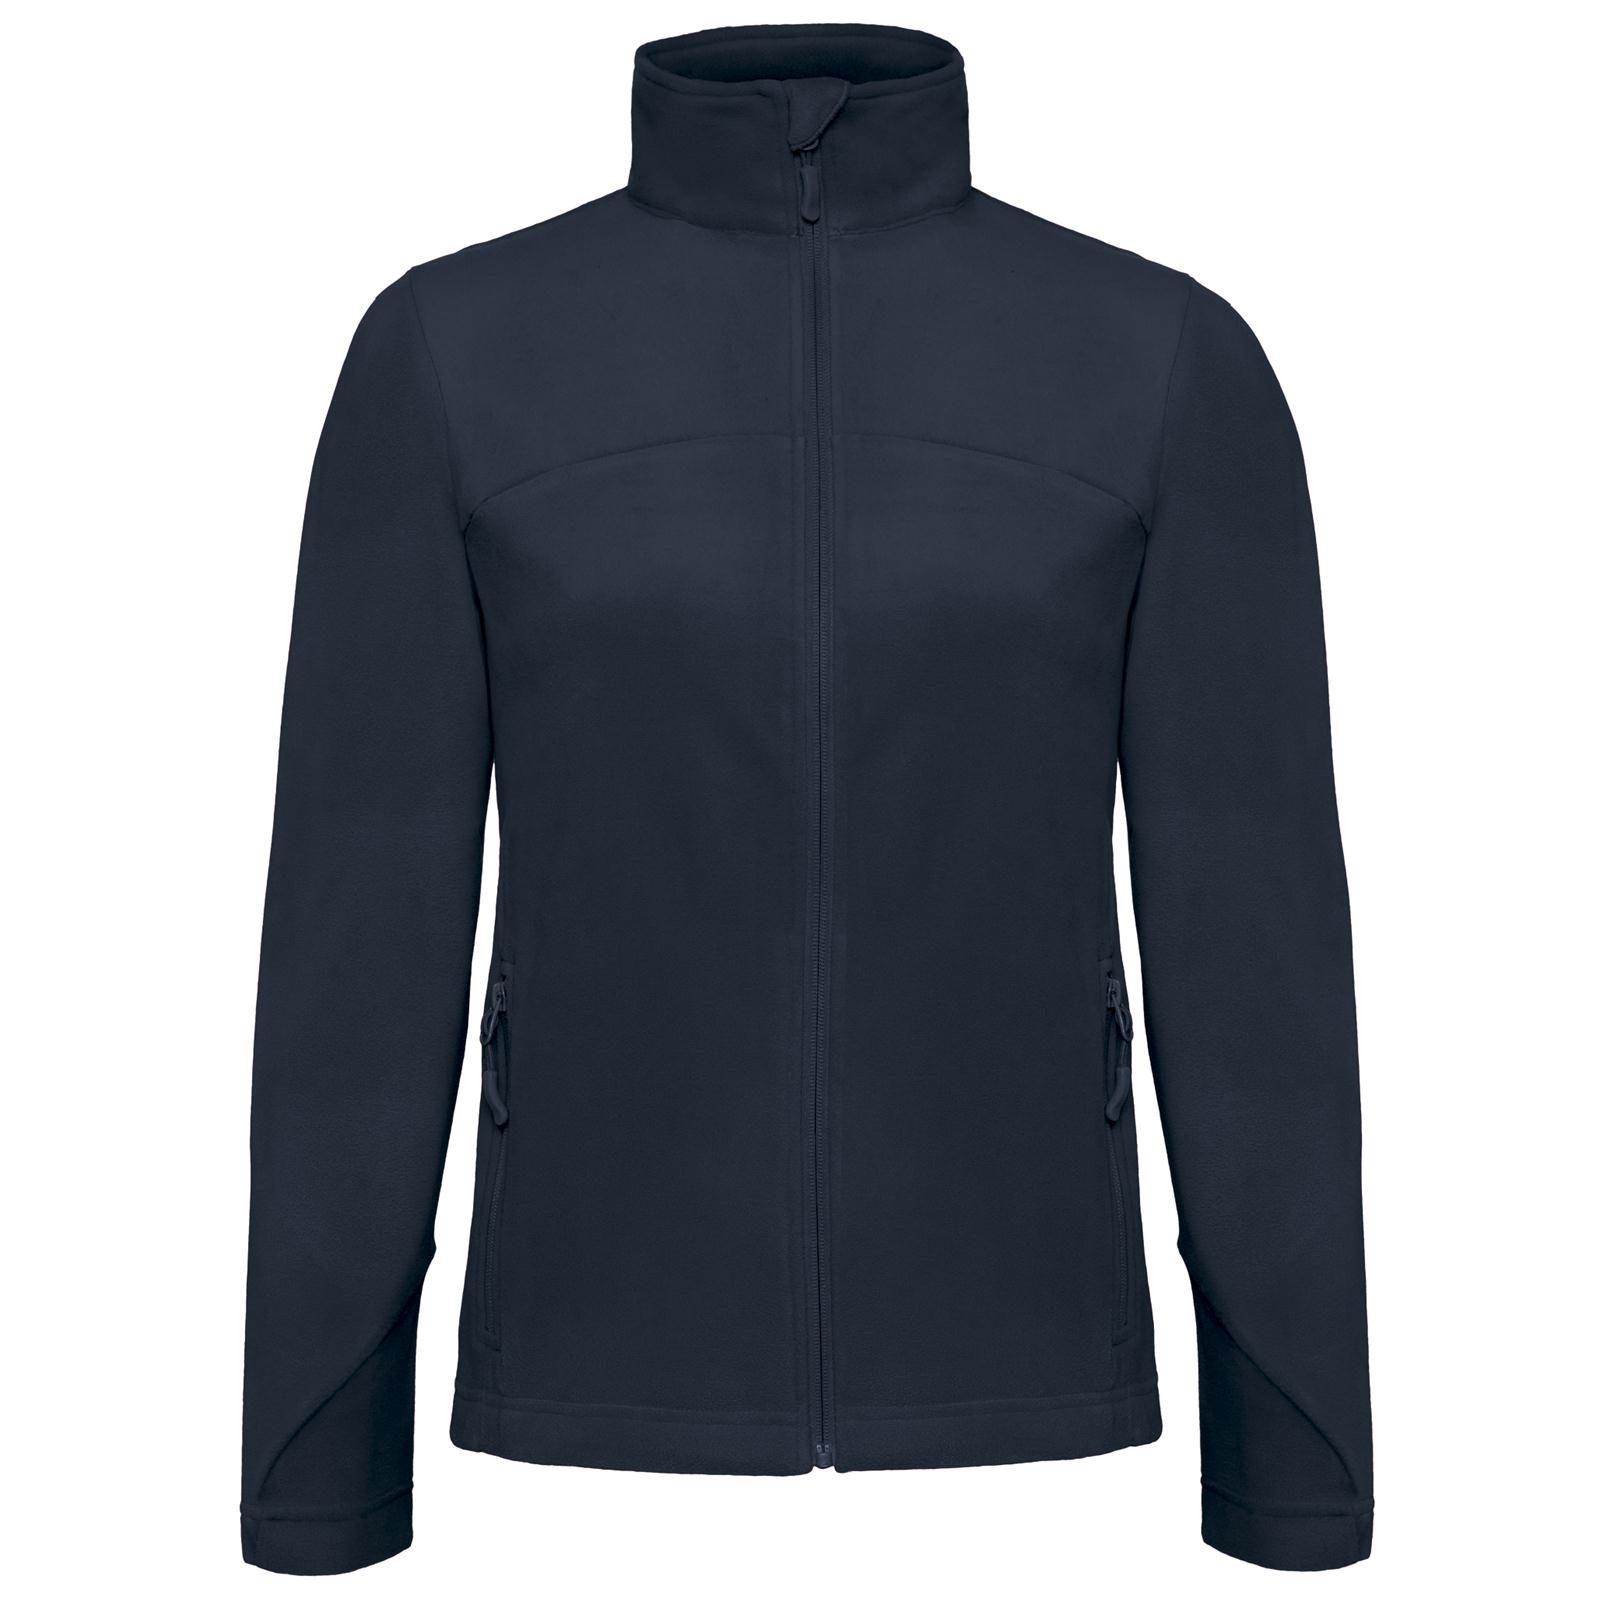 New B&C Womens Ladies Coolstar Soft Zip Up Fleece Jacket in 4 ...